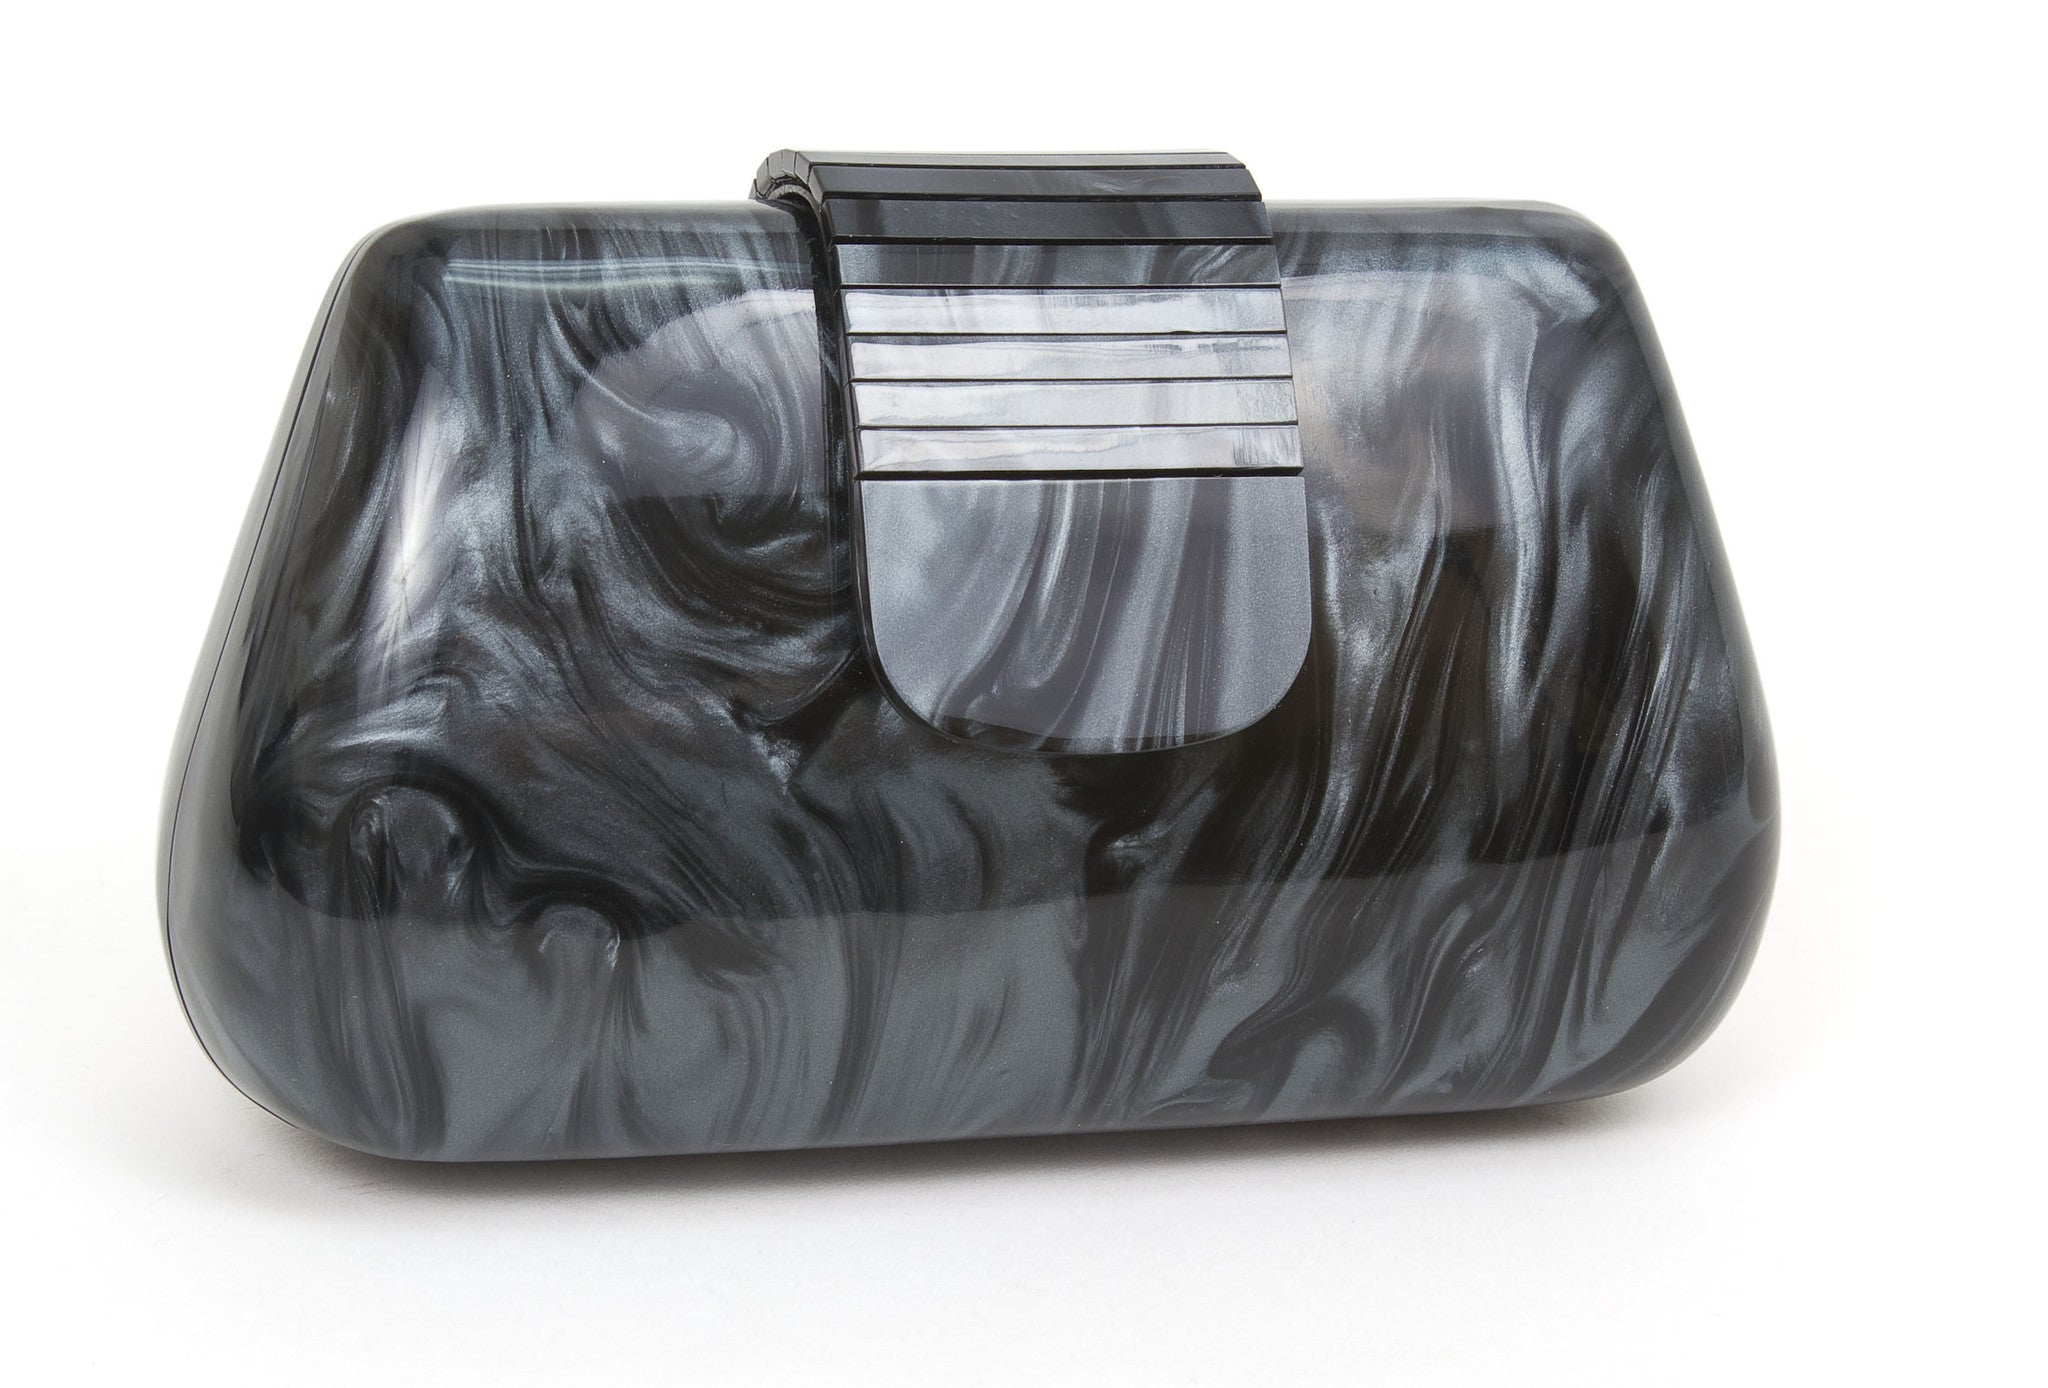 Pearl Lucite Clutch Evening Handbag - Just Jamie